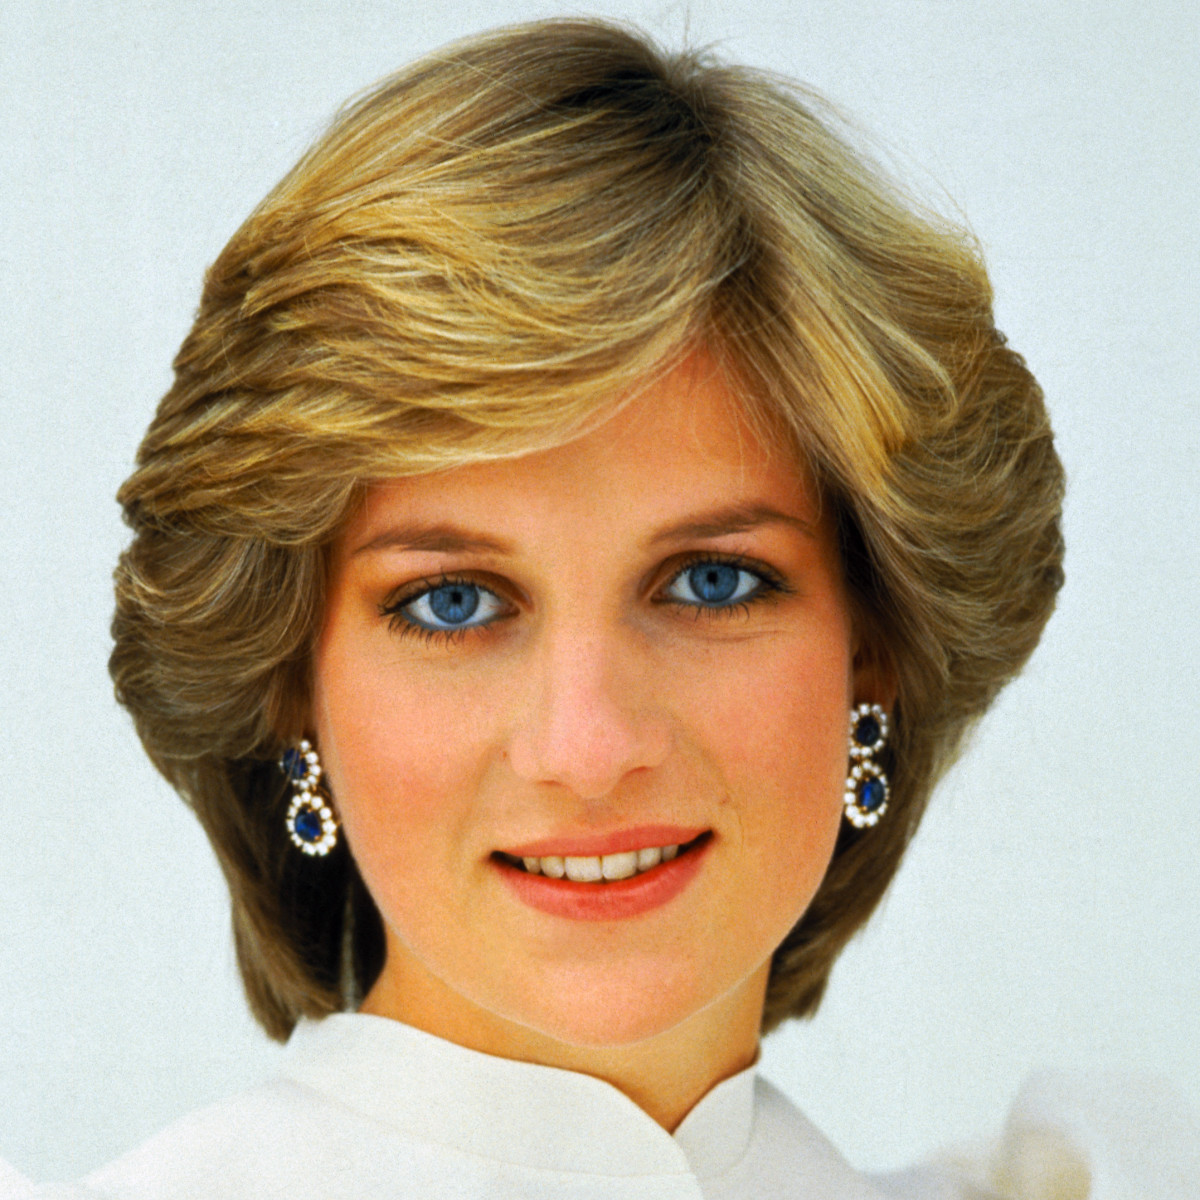 diana princess of wales biography Princess of wales (welsh: tywysoges cymru) is a british courtesy title held by the wife of the prince of wales, who is, since the 14th century, the heir apparent of the english or british monarch the first acknowledged title holder was eleanor de montfort, wife of llywelyn ap gruffudd.